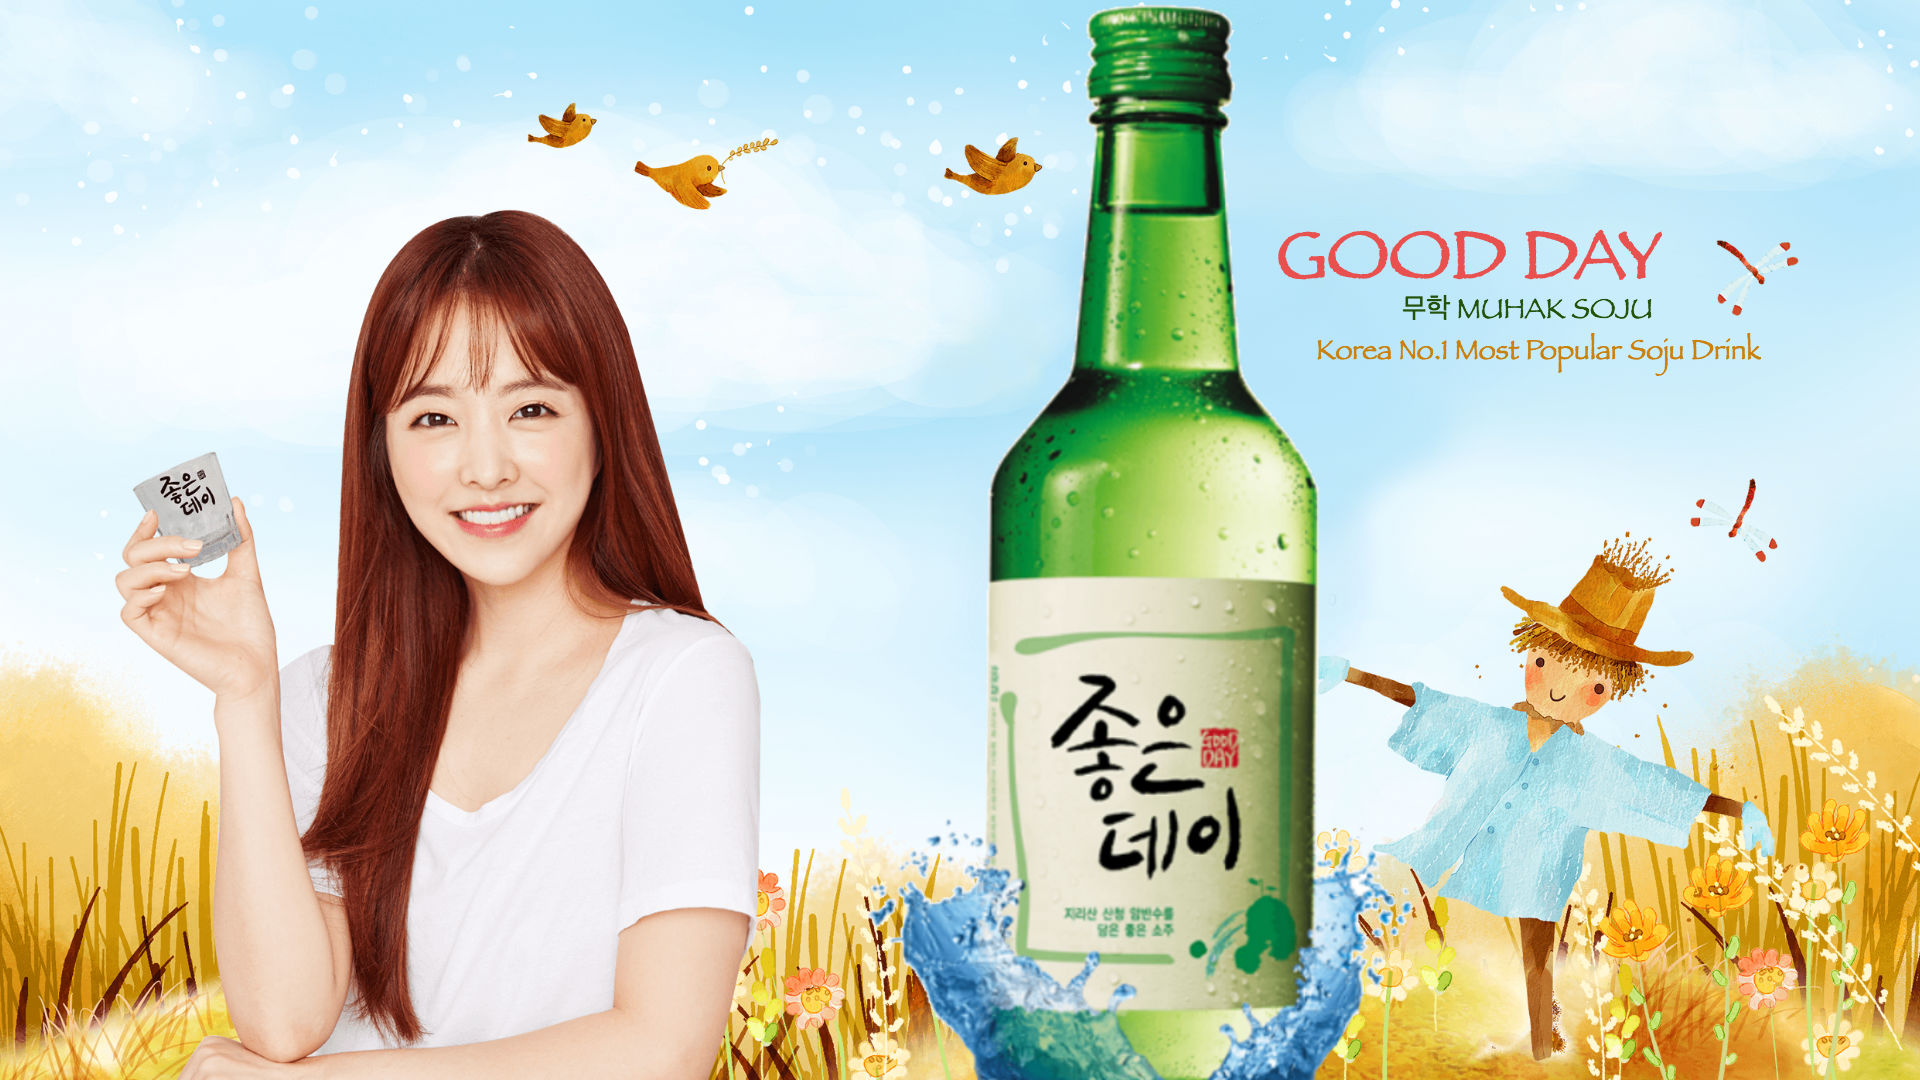 Korean No 1 Most Popular Soju